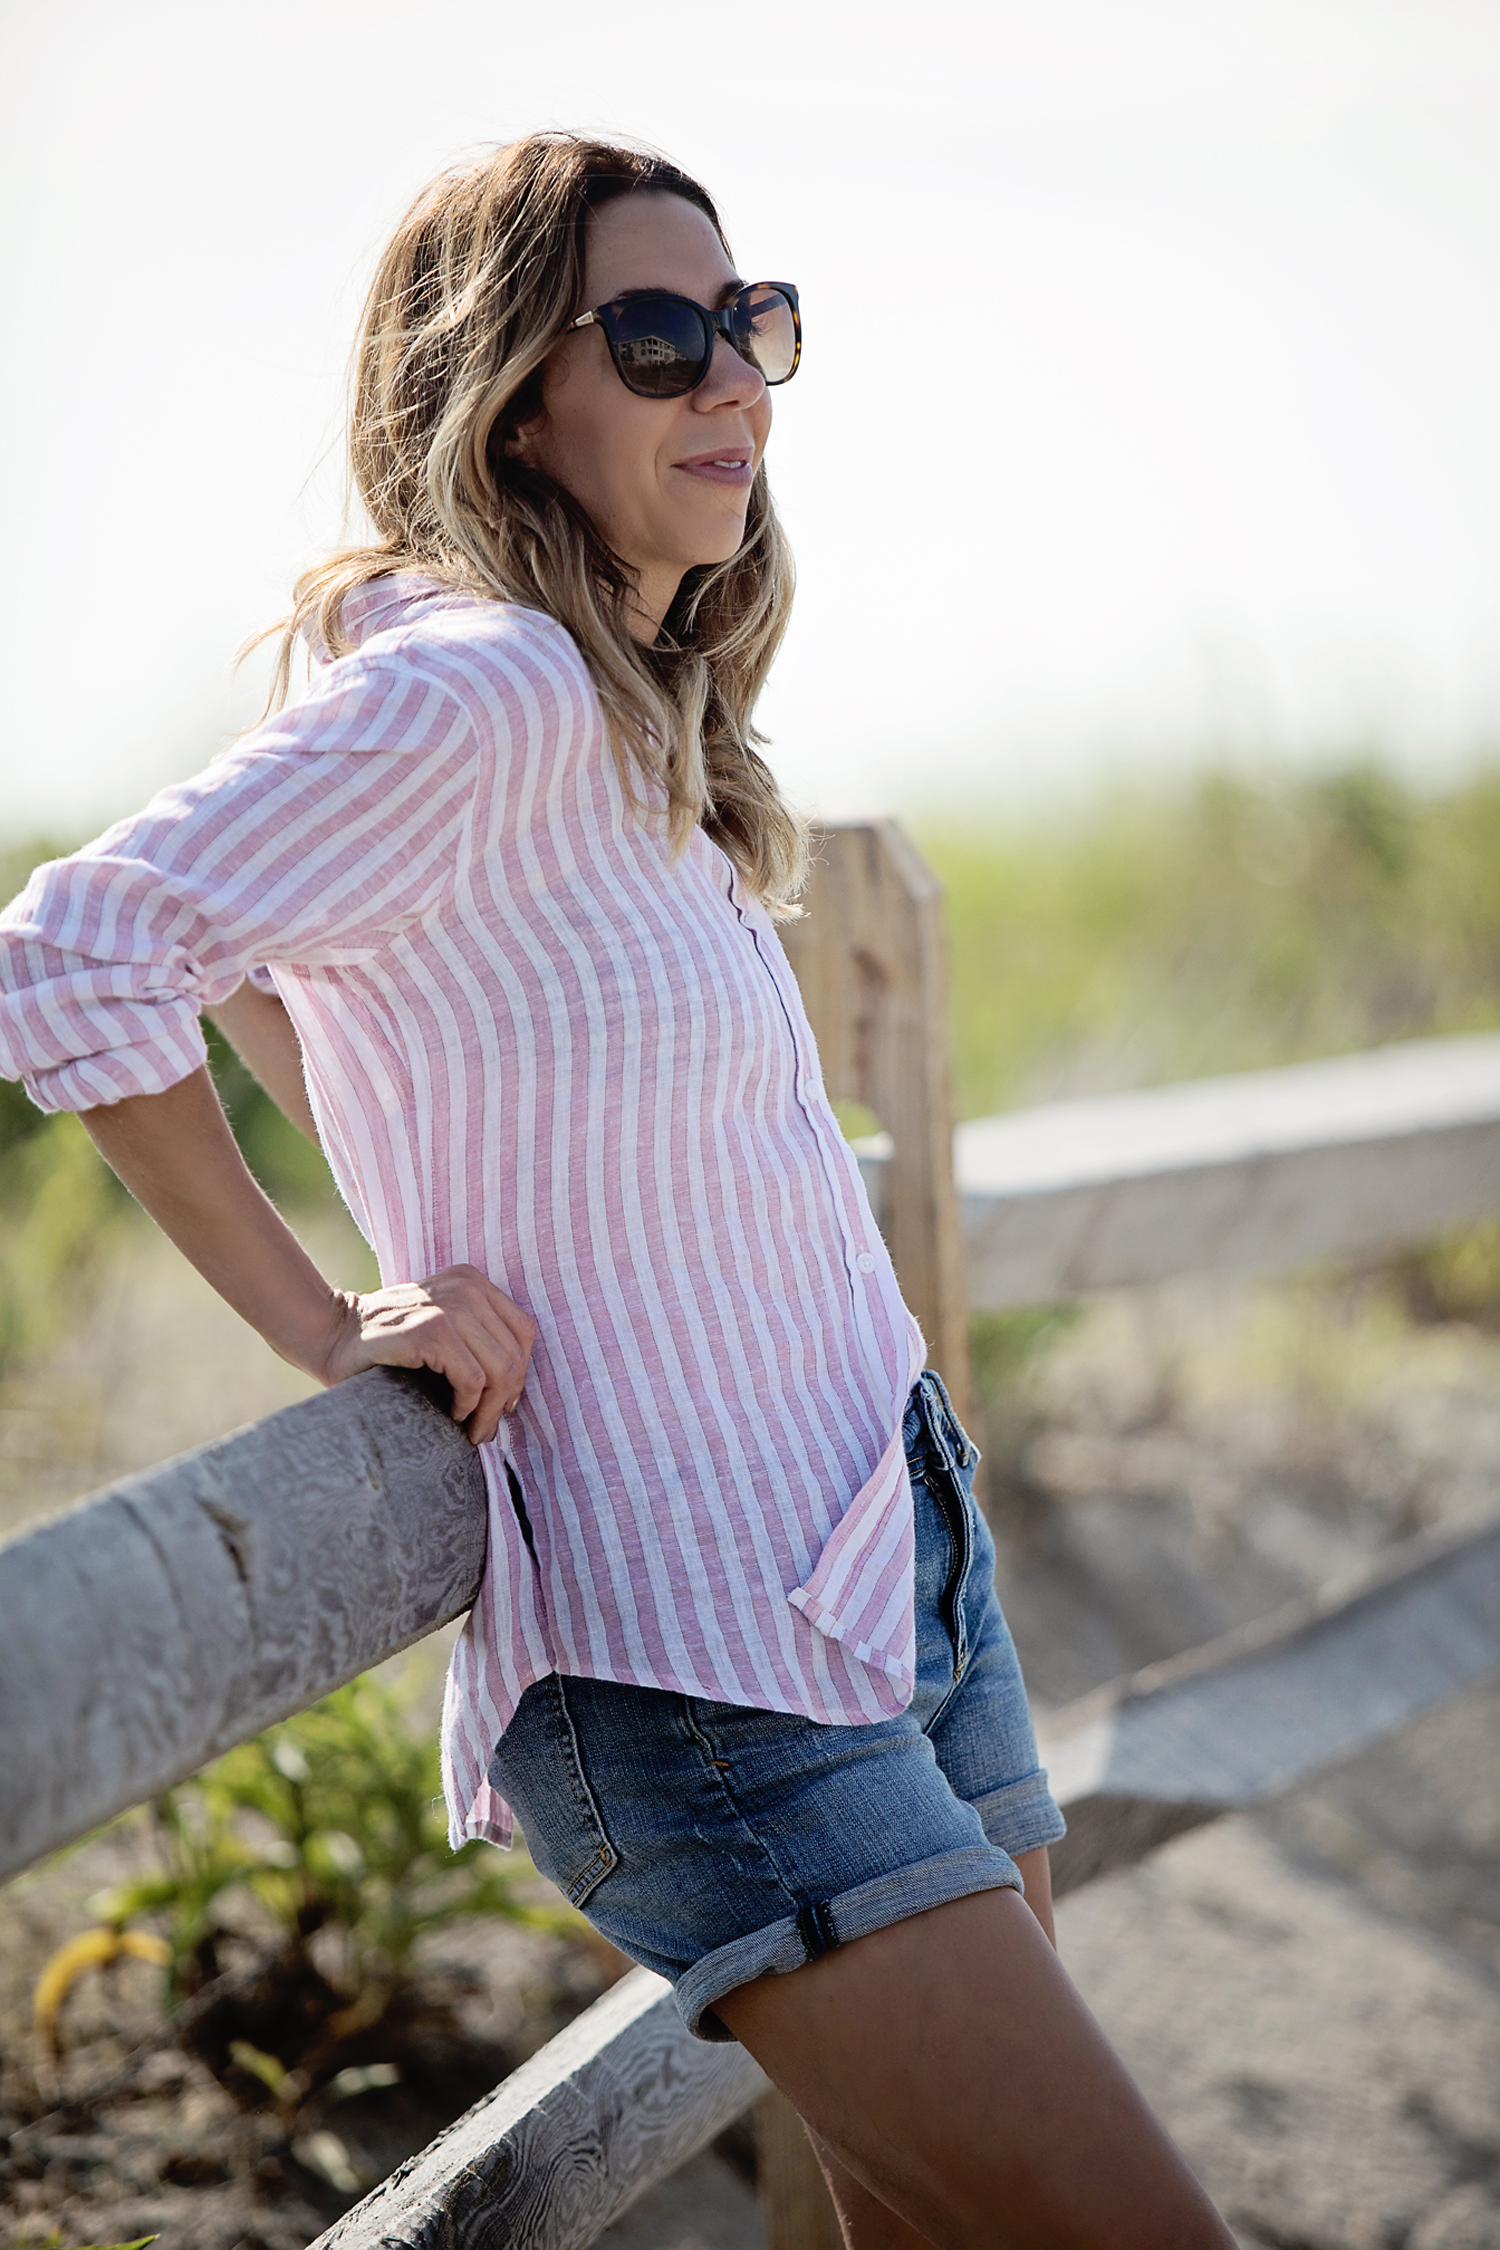 The Motherchic wearing rails button-down